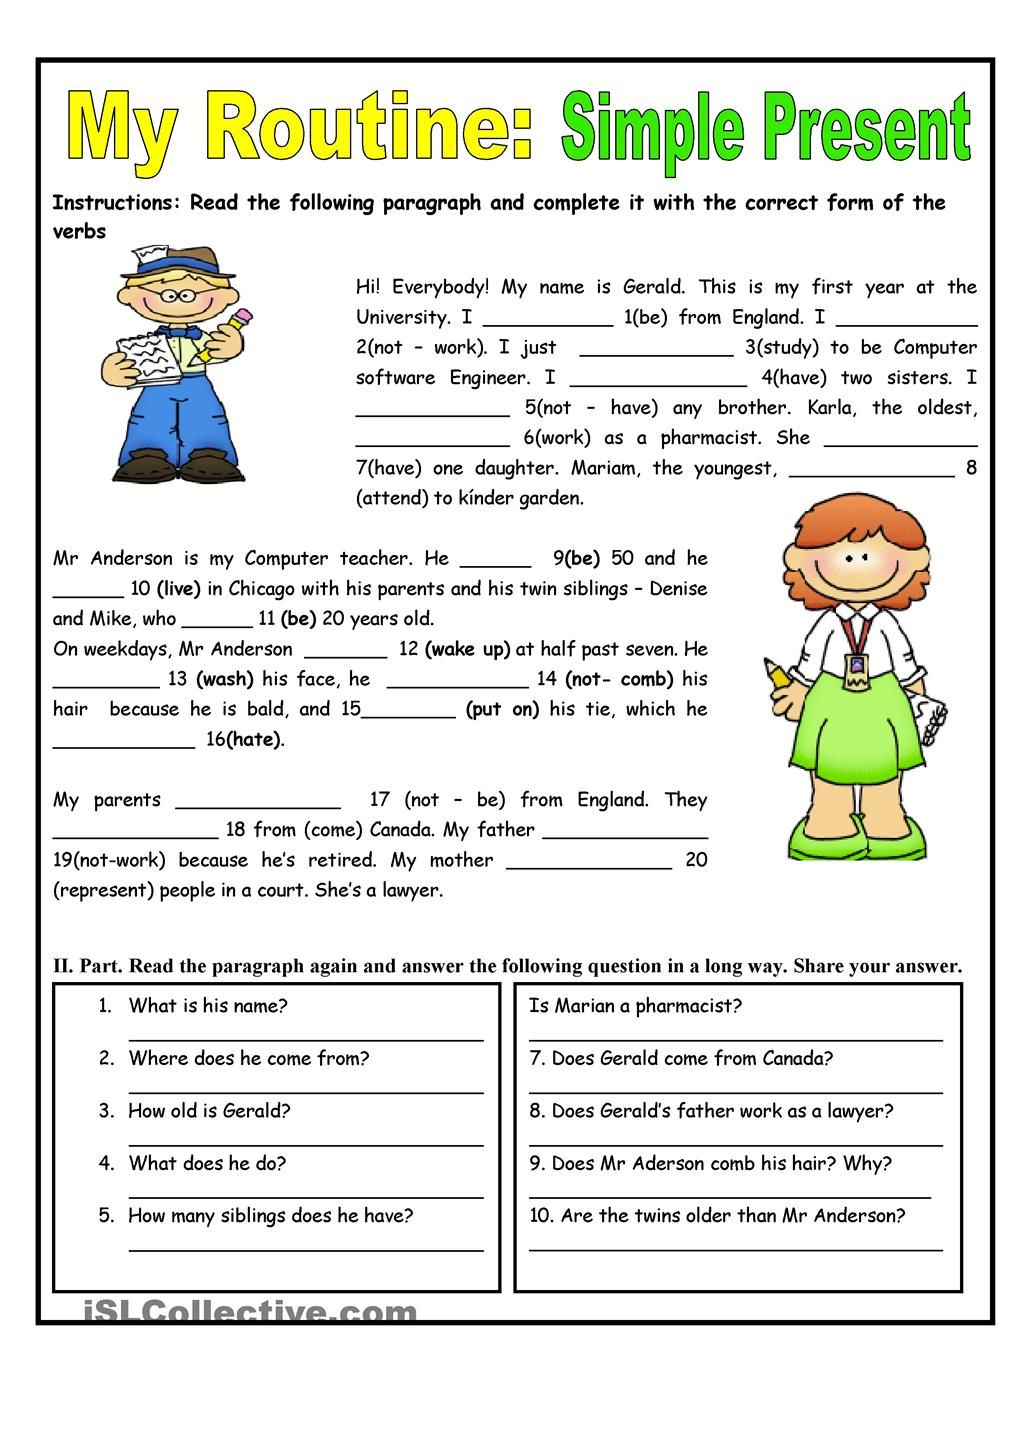 My Routine. Simple Present Tense - worksheet - kindergarten level ...